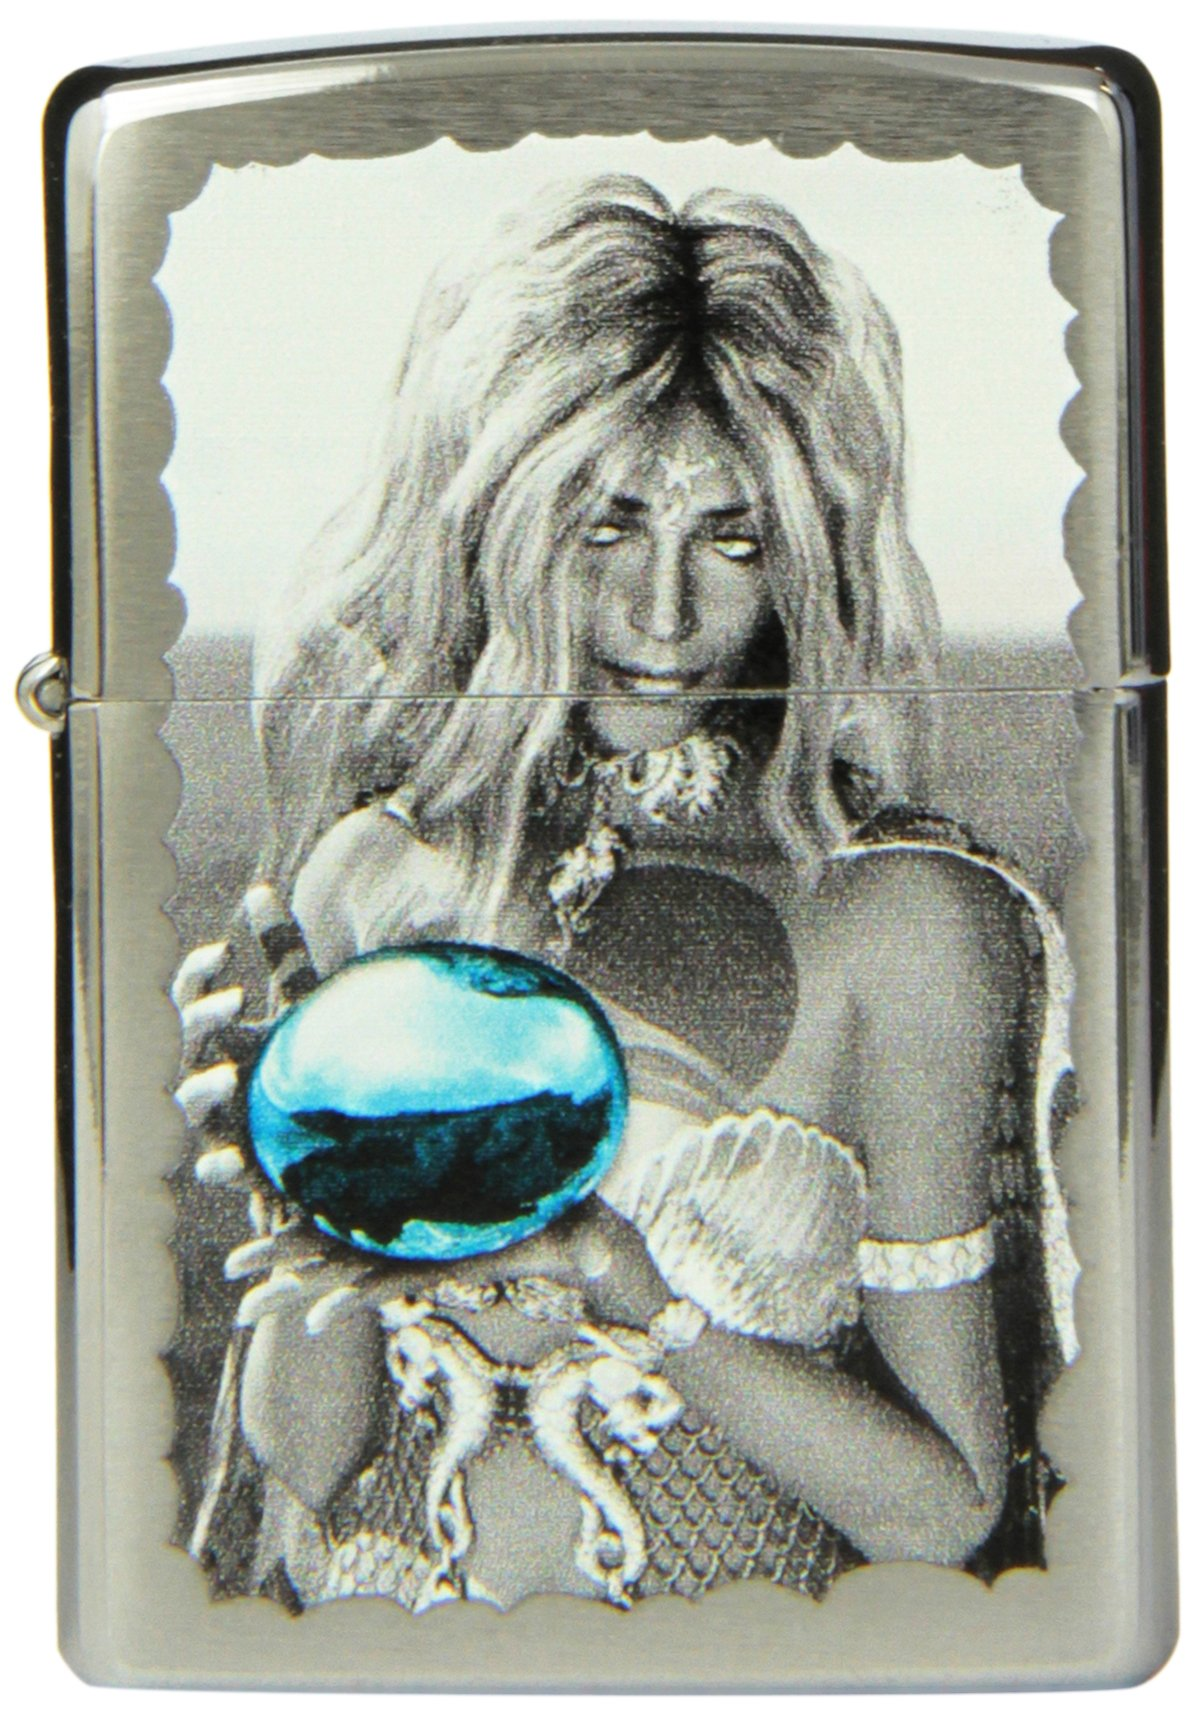 Zippo Woman Lighter, Brushed Chrome